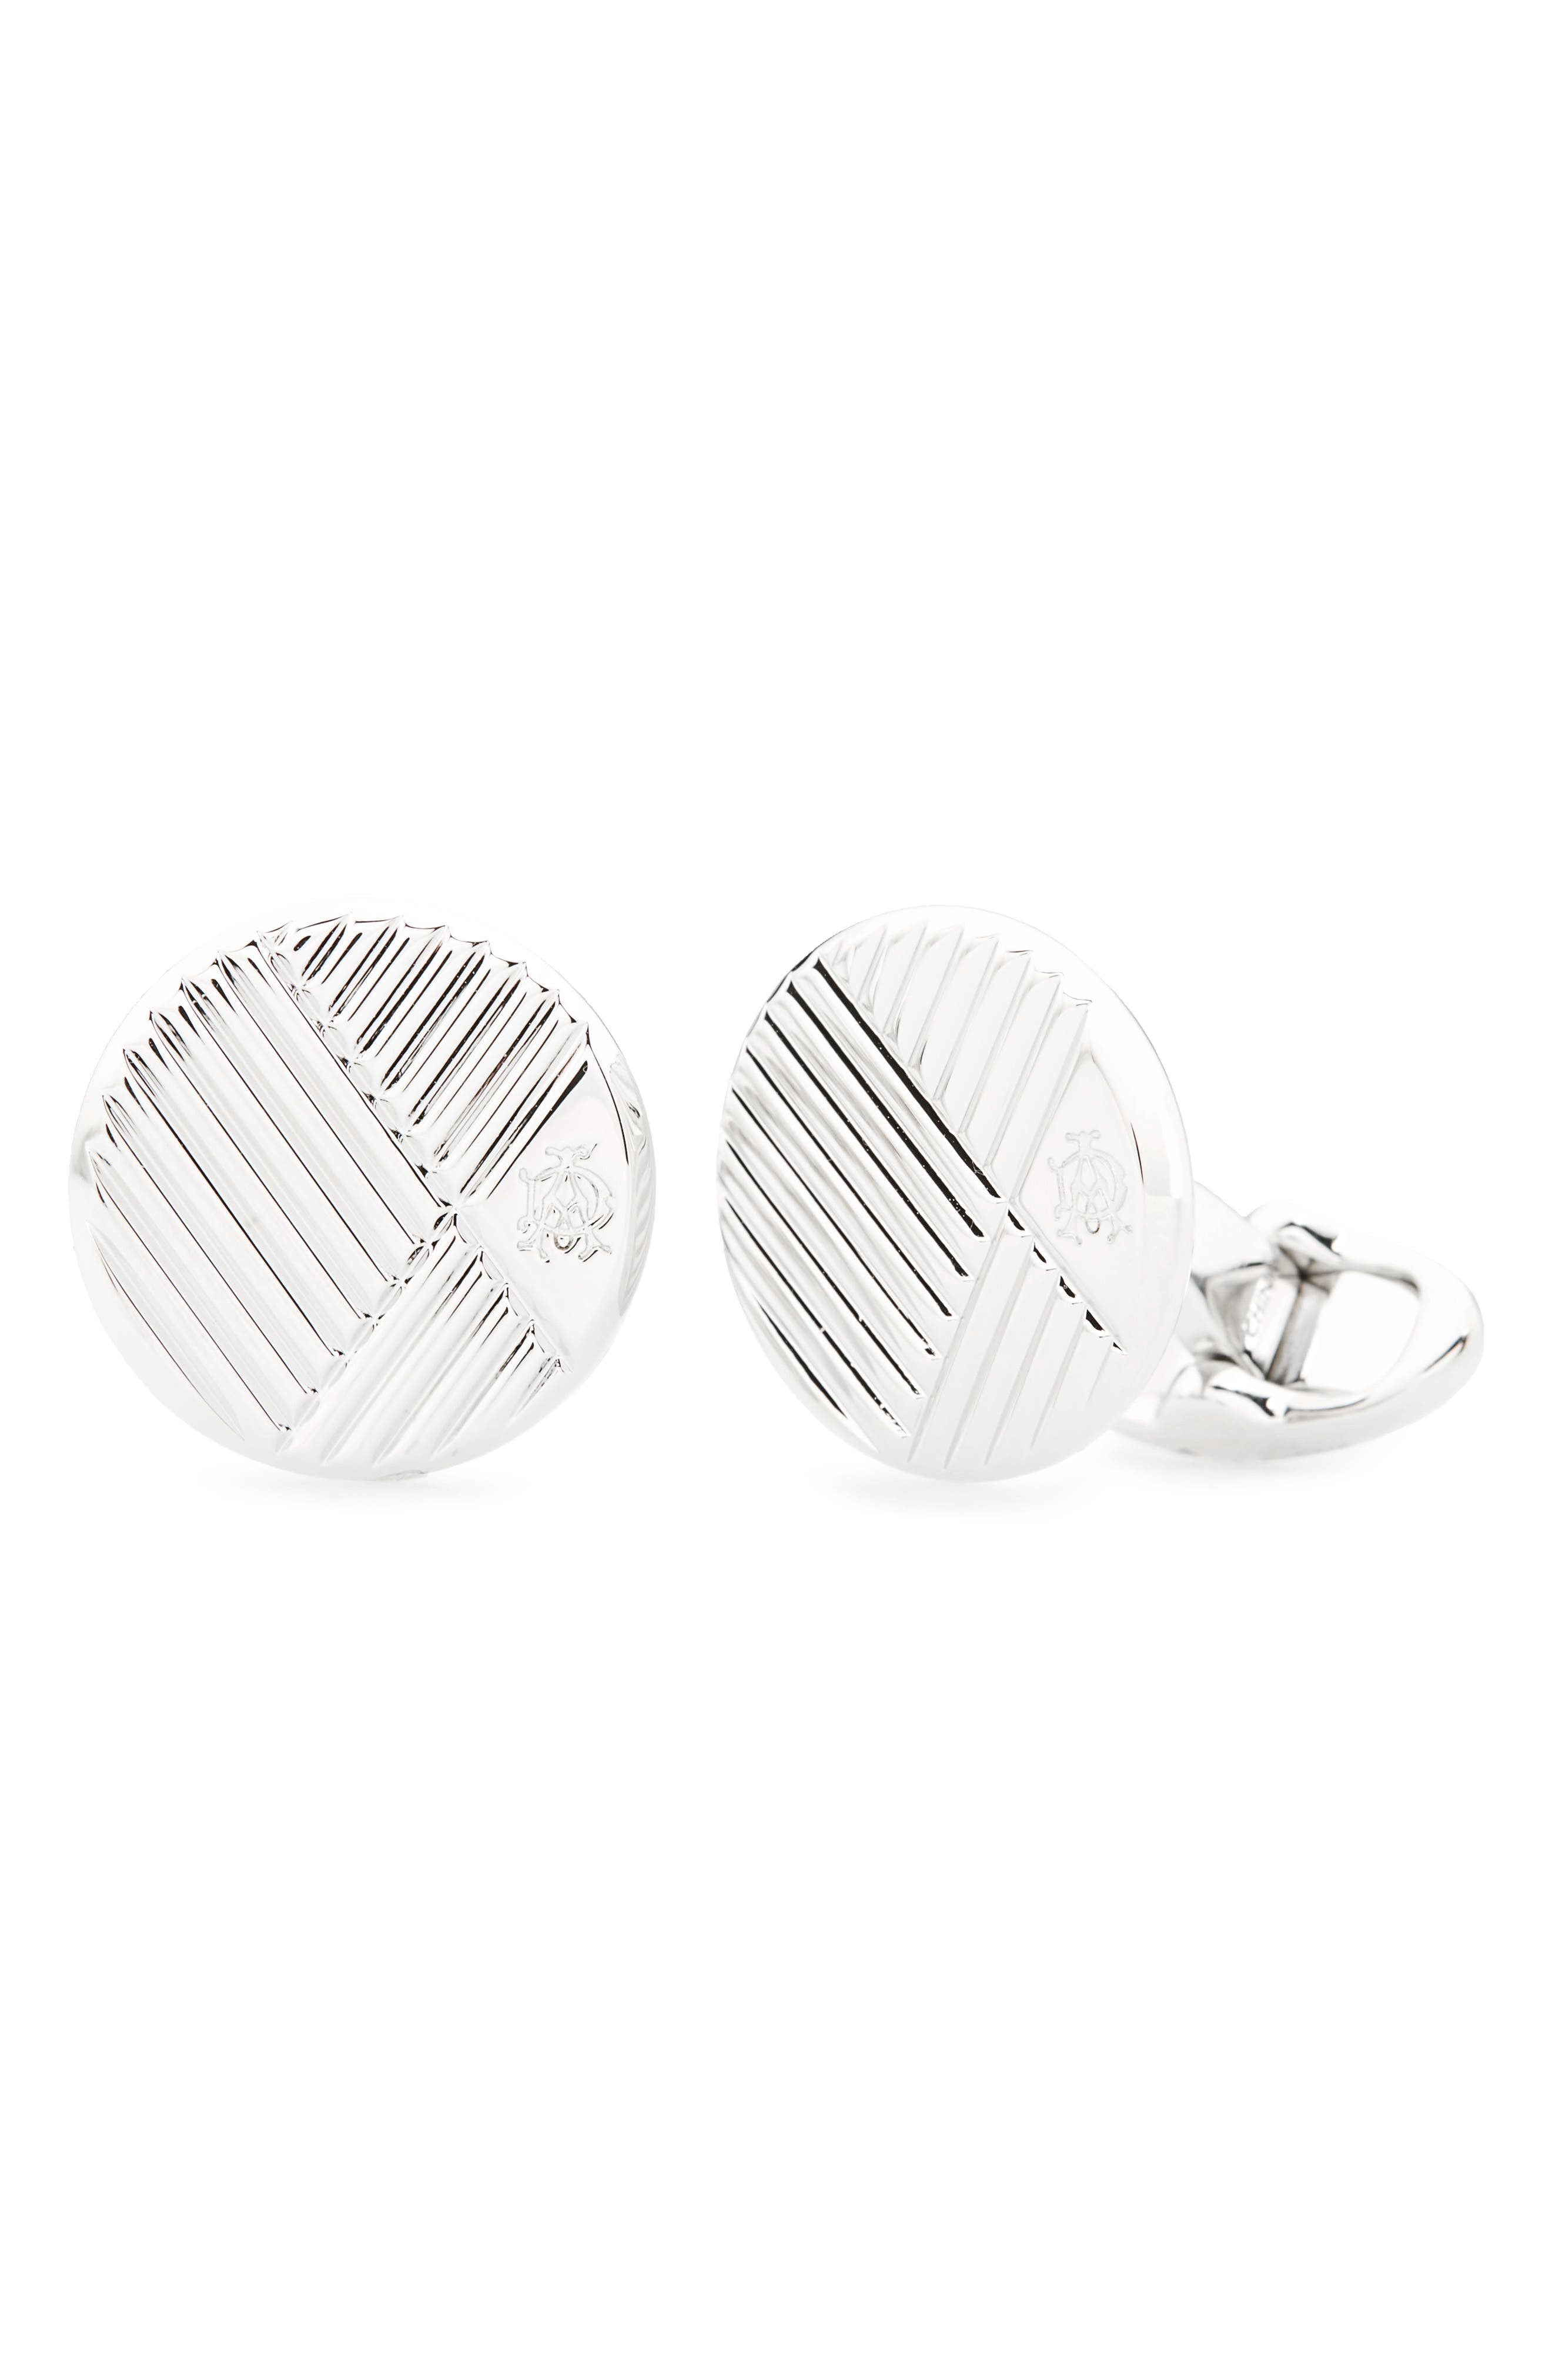 Round Diagonal Cuff Links,                         Main,                         color,